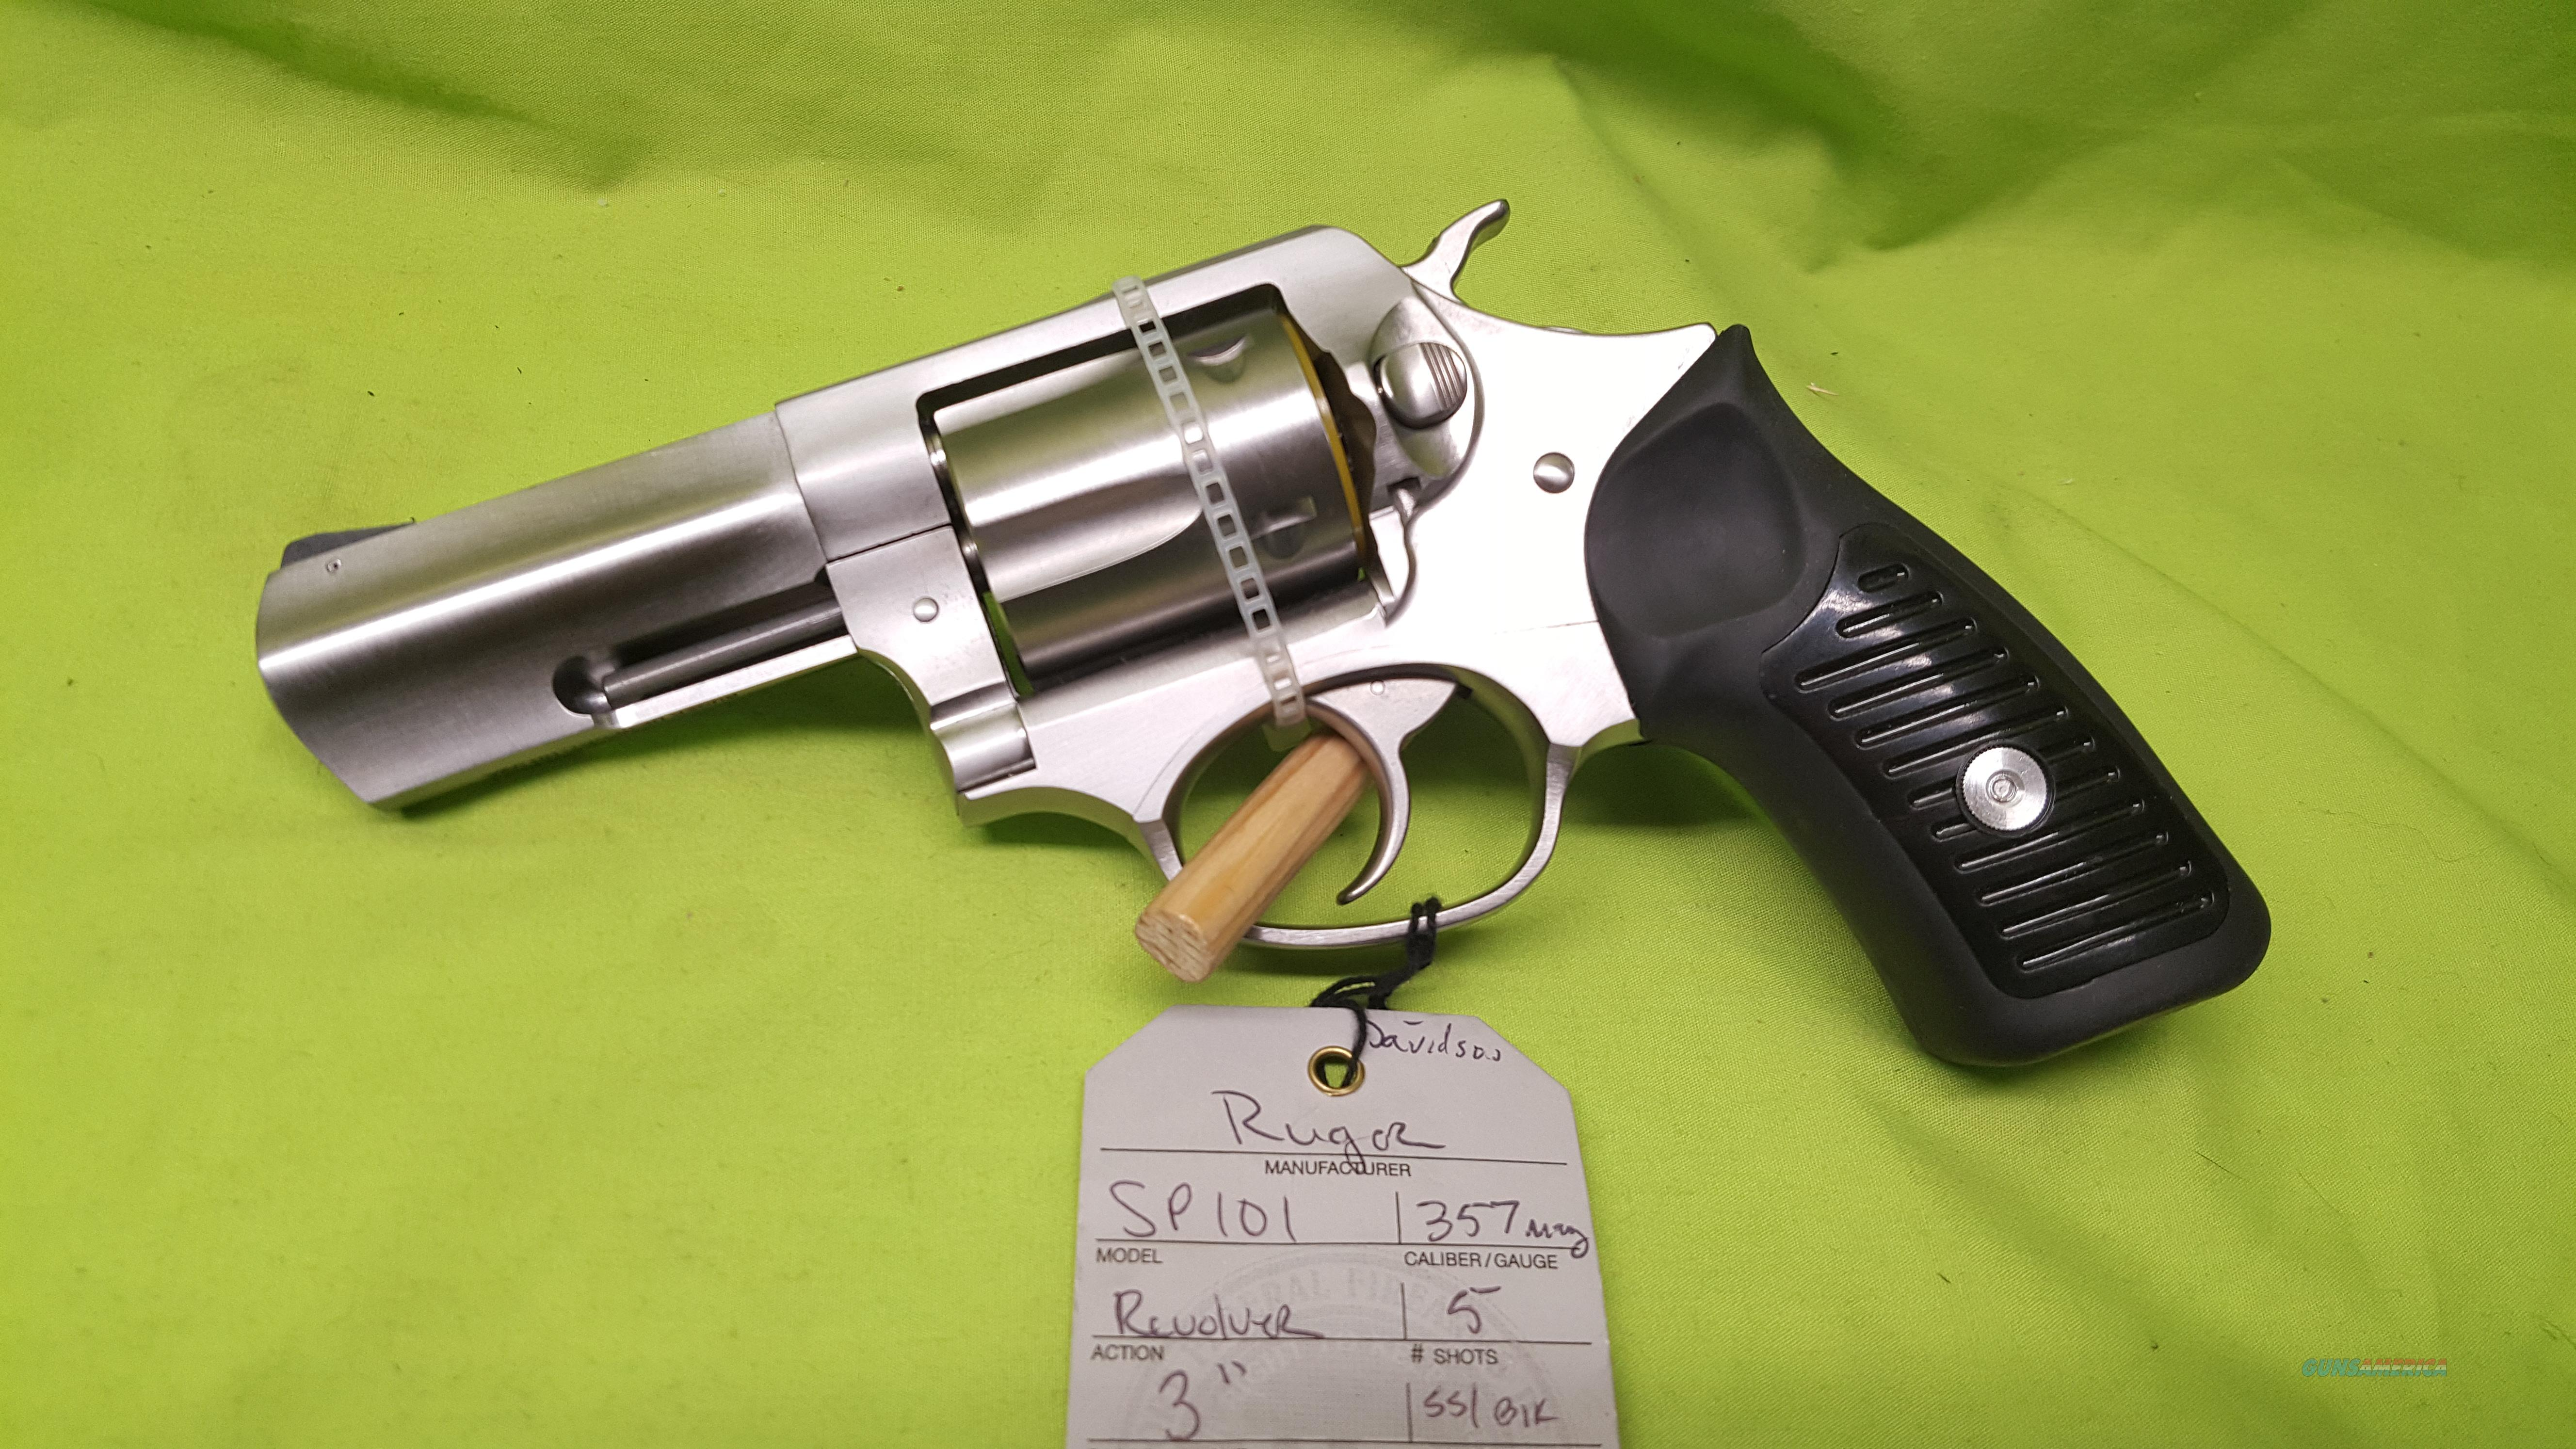 "RUGER SP101 SP 101 357 MAG REVOLVER 3"" STAINLESS  Guns > Pistols > Ruger Double Action Revolver > SP101 Type"